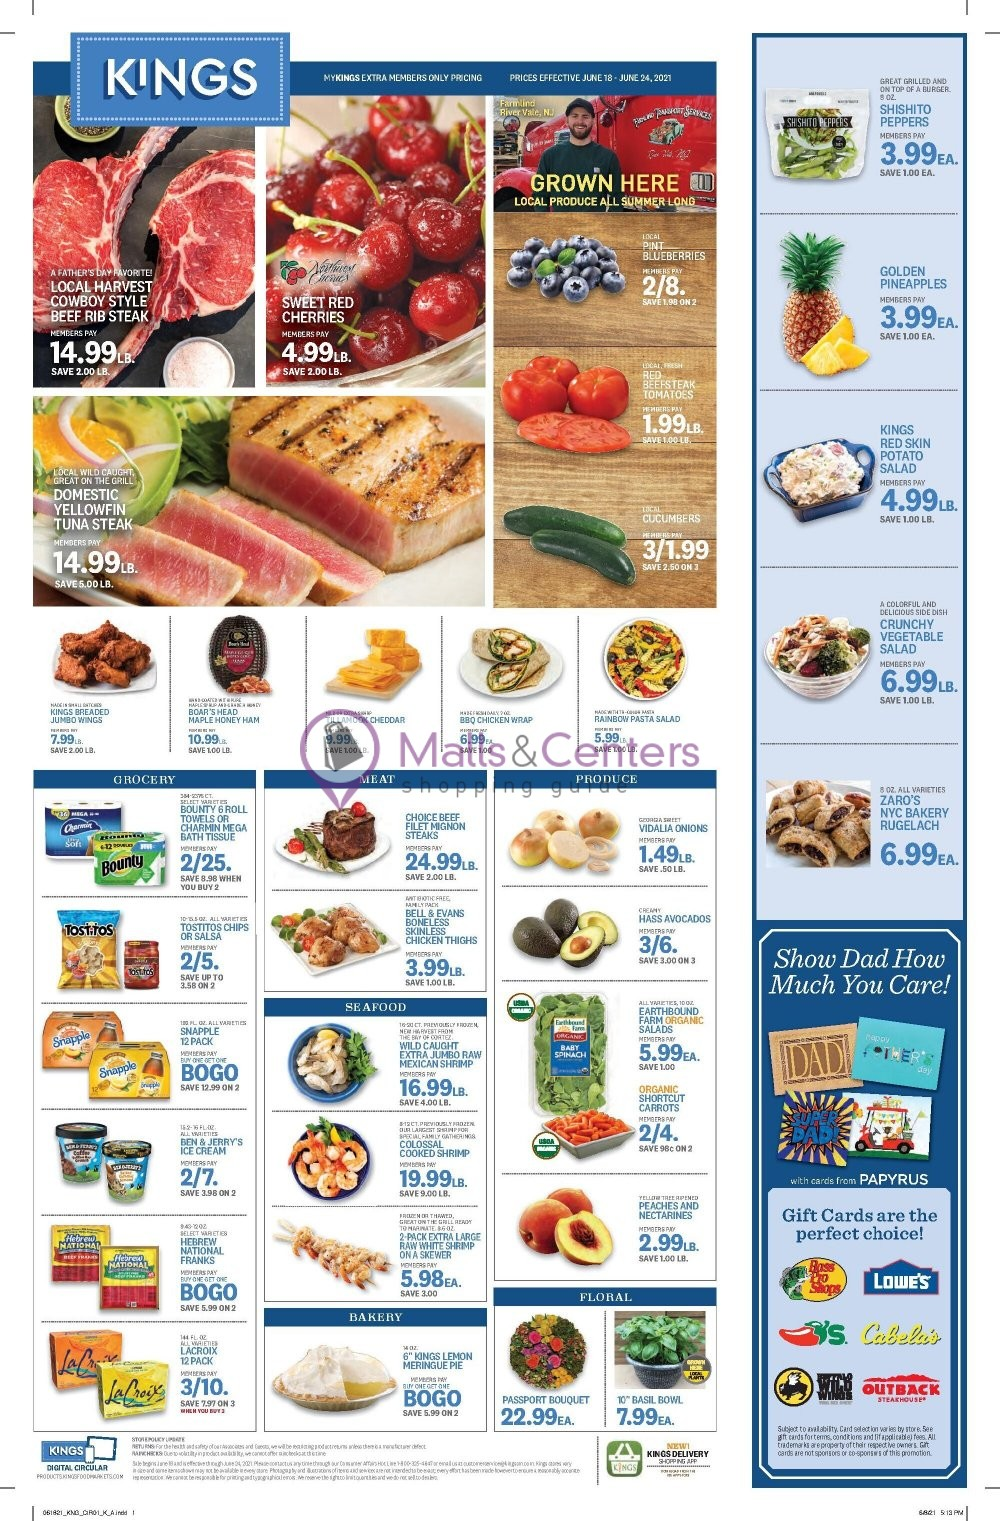 weekly ads Kings Food Markets - page 1 - mallscenters.com